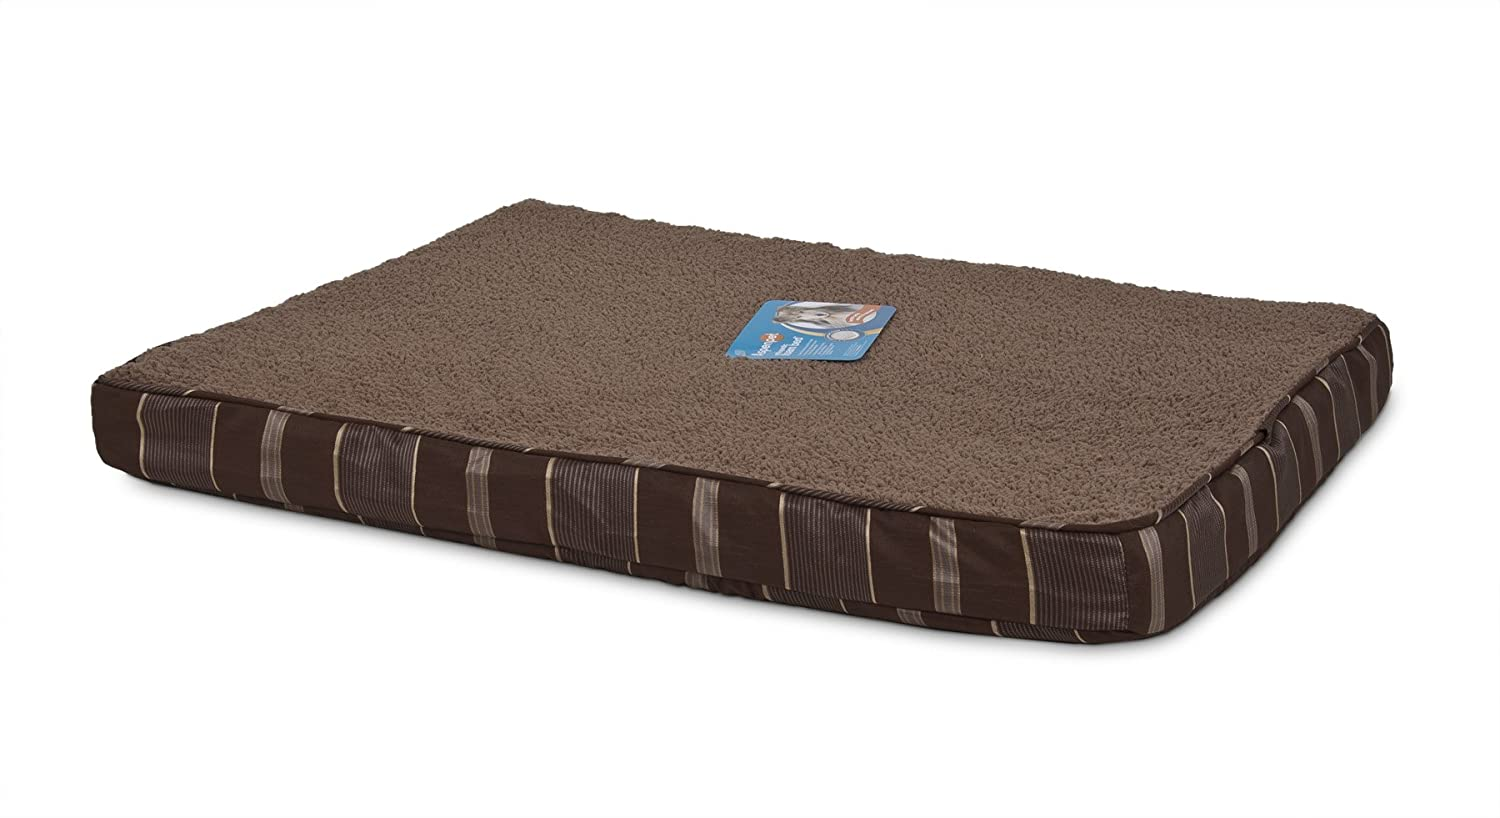 27\ Petmate 28167 Orthopaedic Pet Bed, 27 inch by 36 inch, colors May Vary